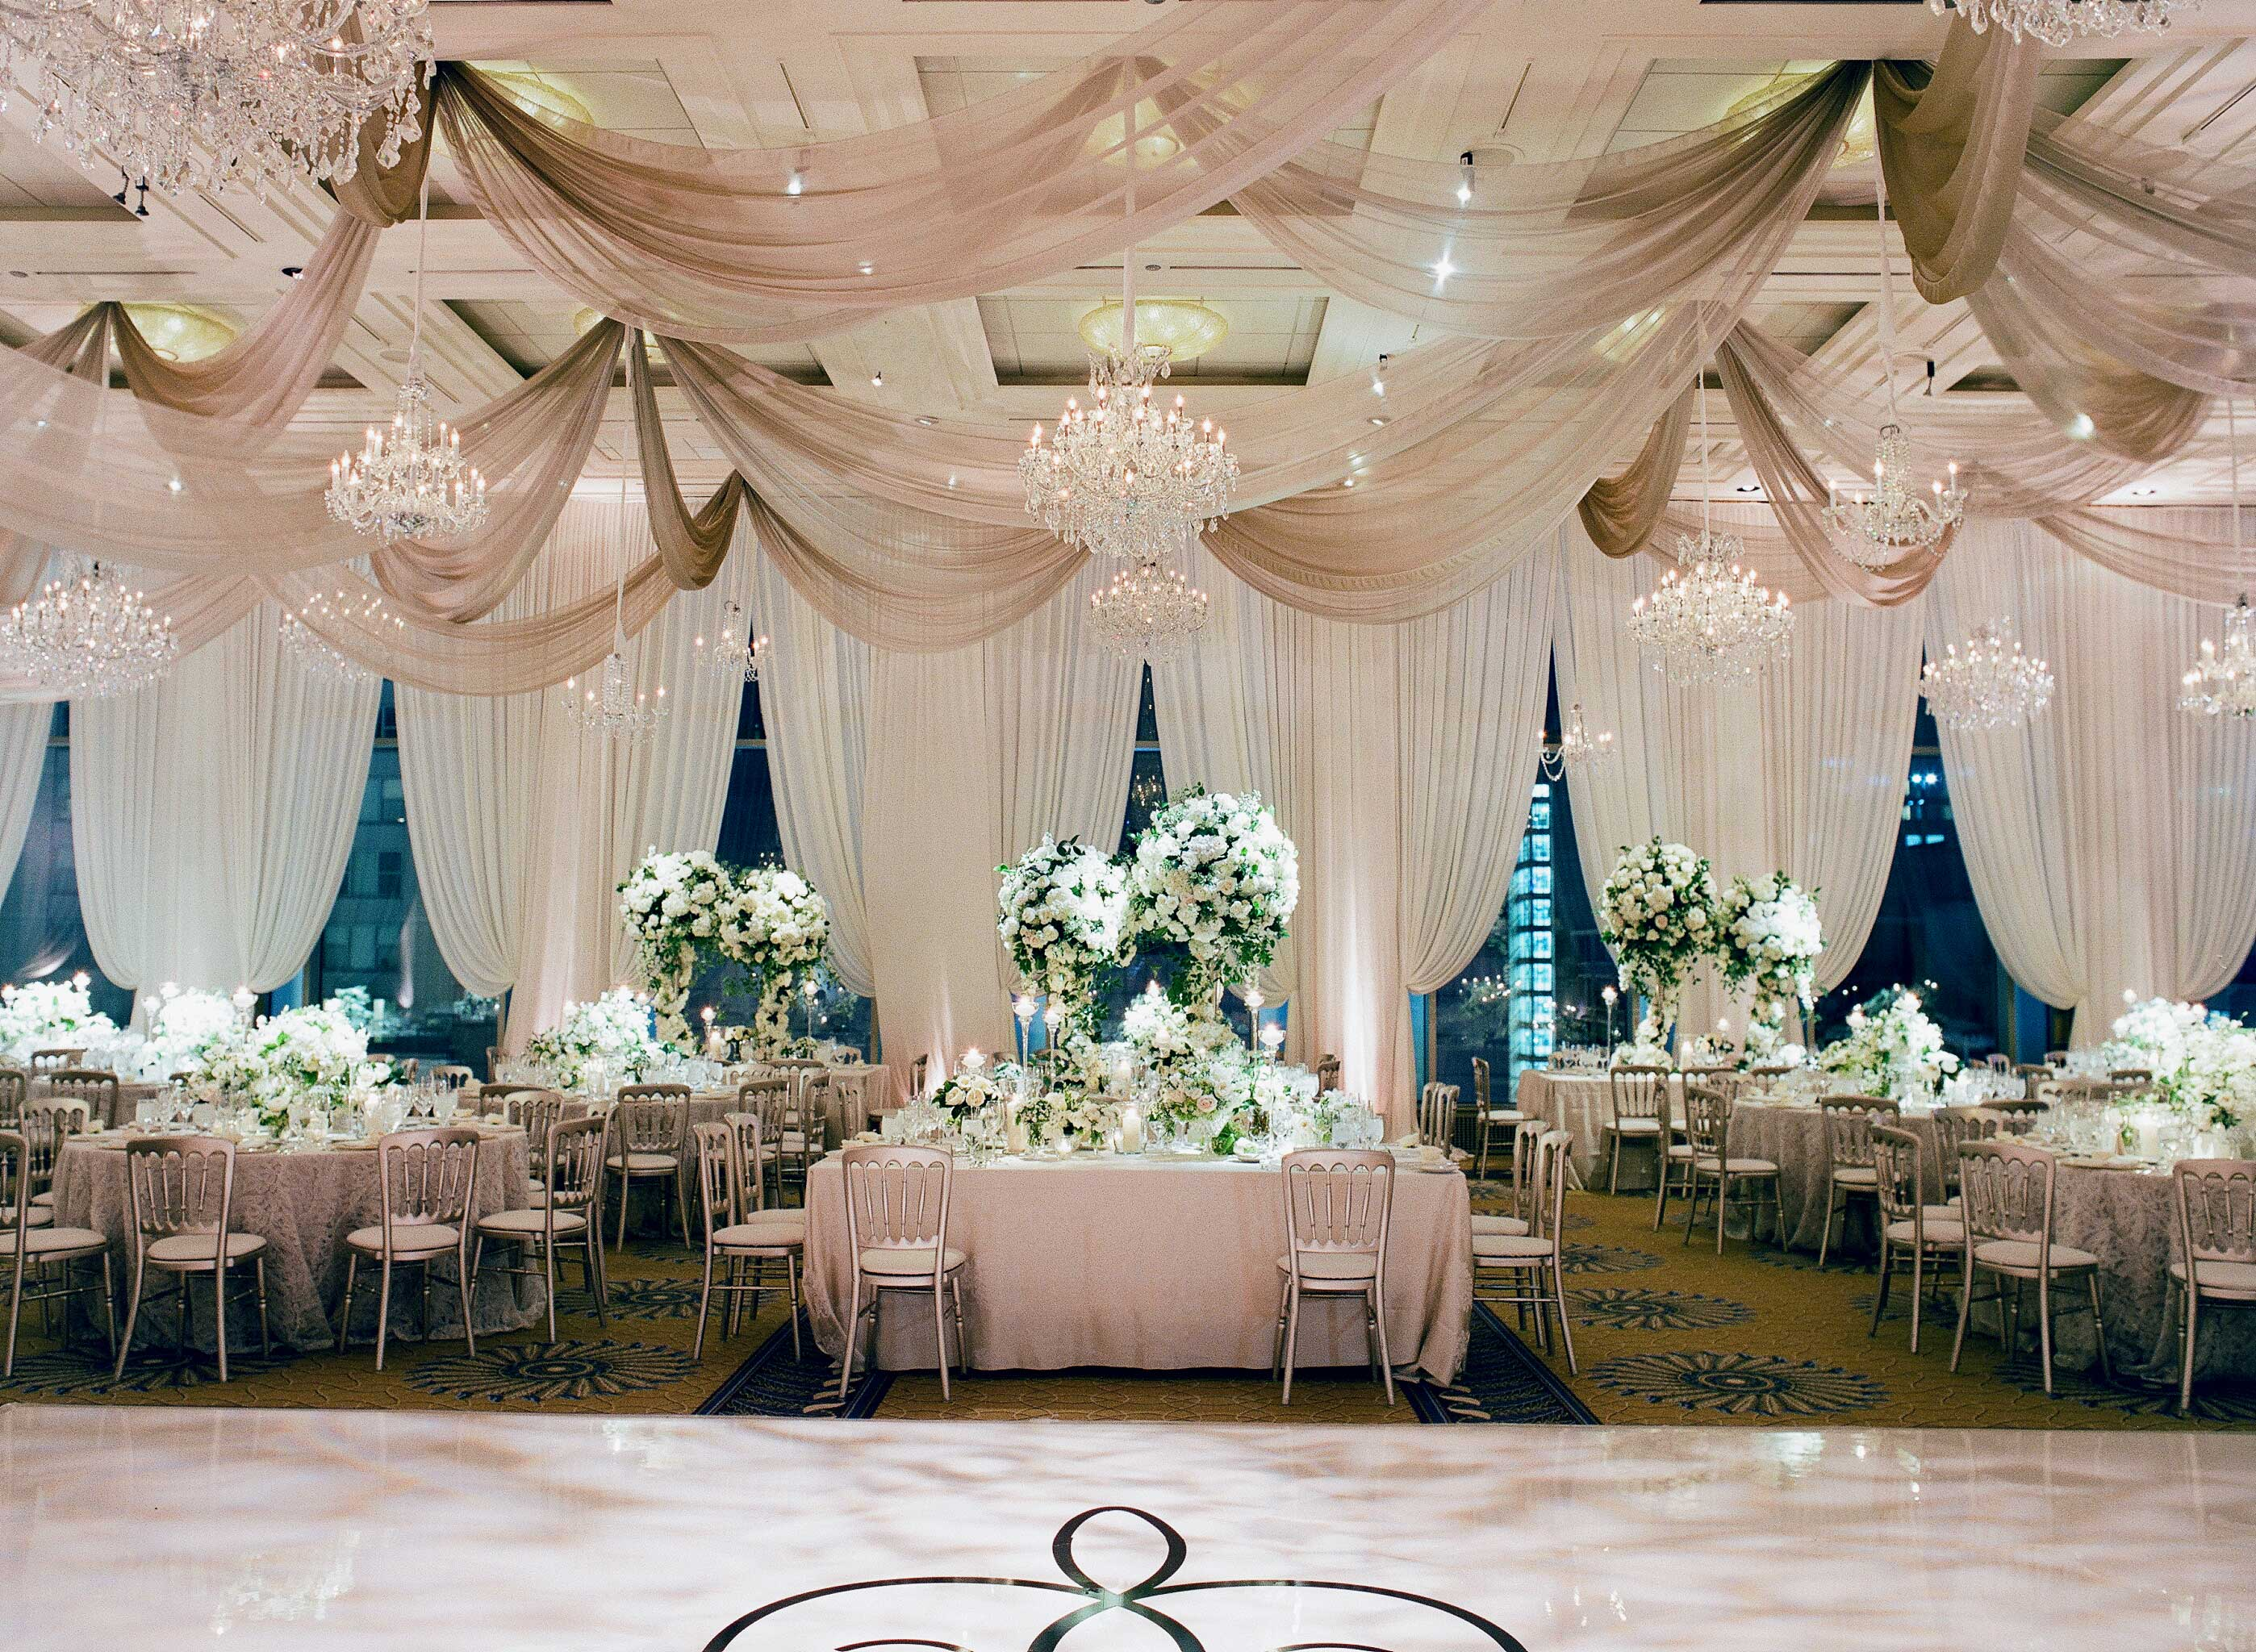 4 festive and chic color schemes for your spring wedding inside